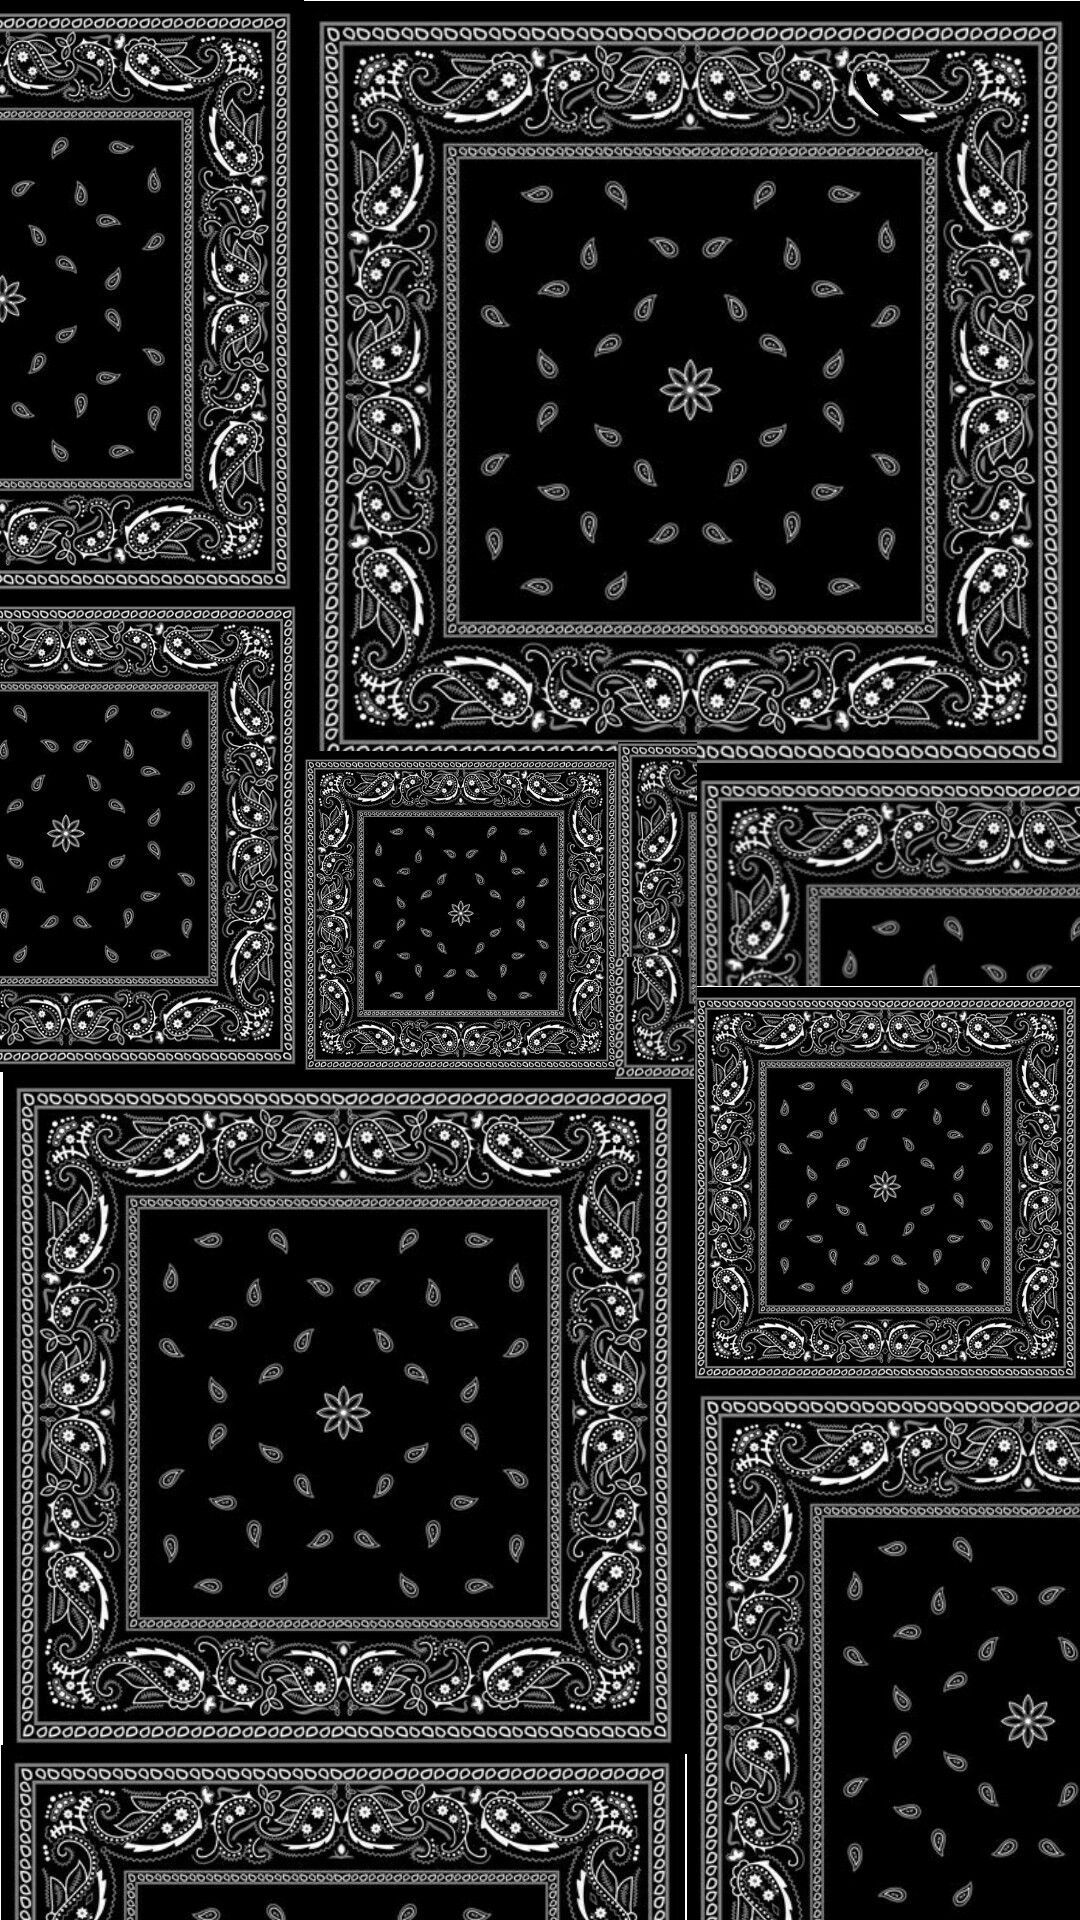 1080x1920 BLACK BANDANA WALLPAPER. in 2019 | Wallpaper backgrounds ...